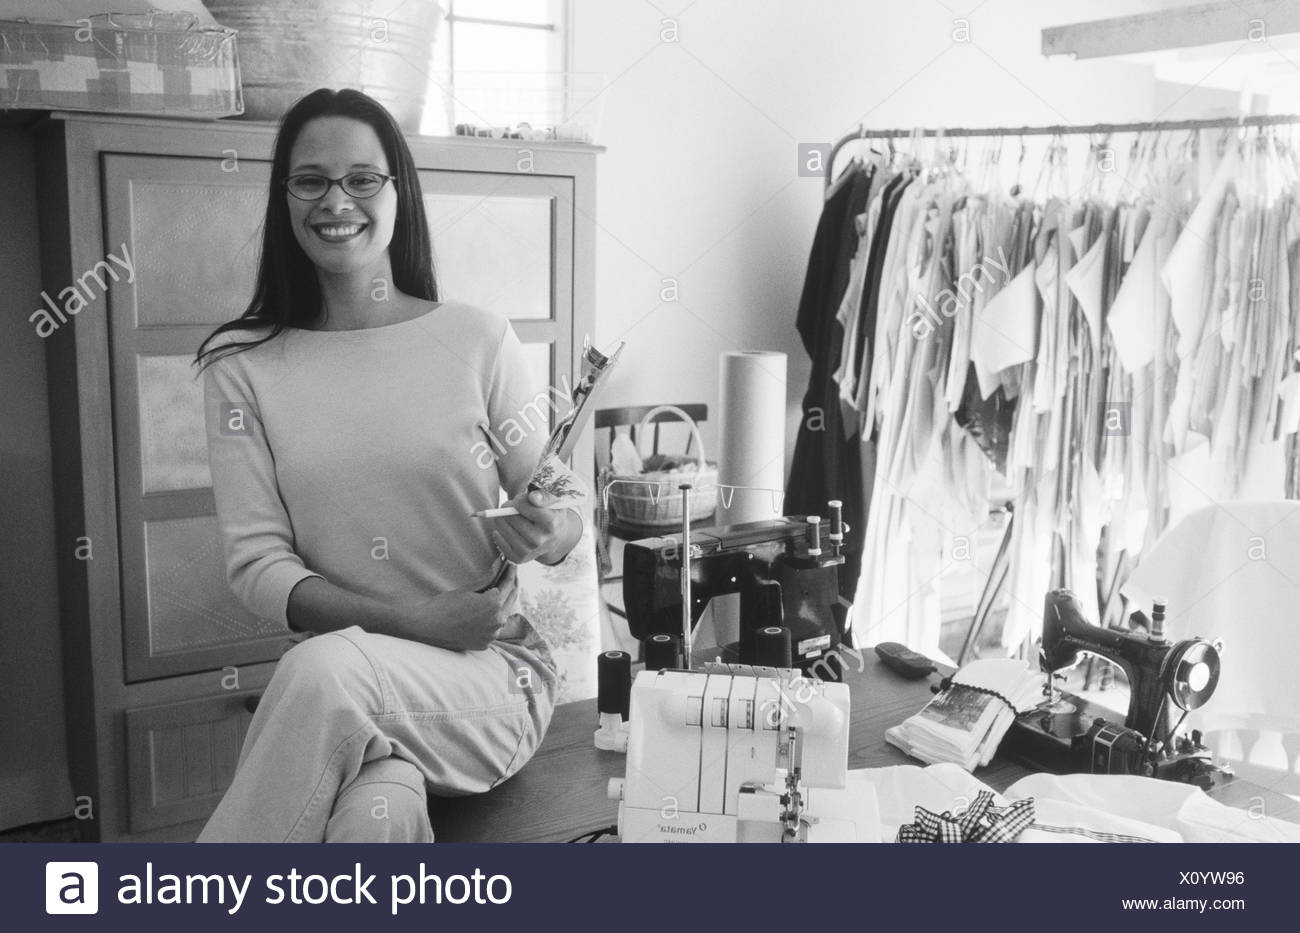 Young Hispanic Fashion Designer Starting Up Her Business In Her Home Garage Stock Photo Alamy